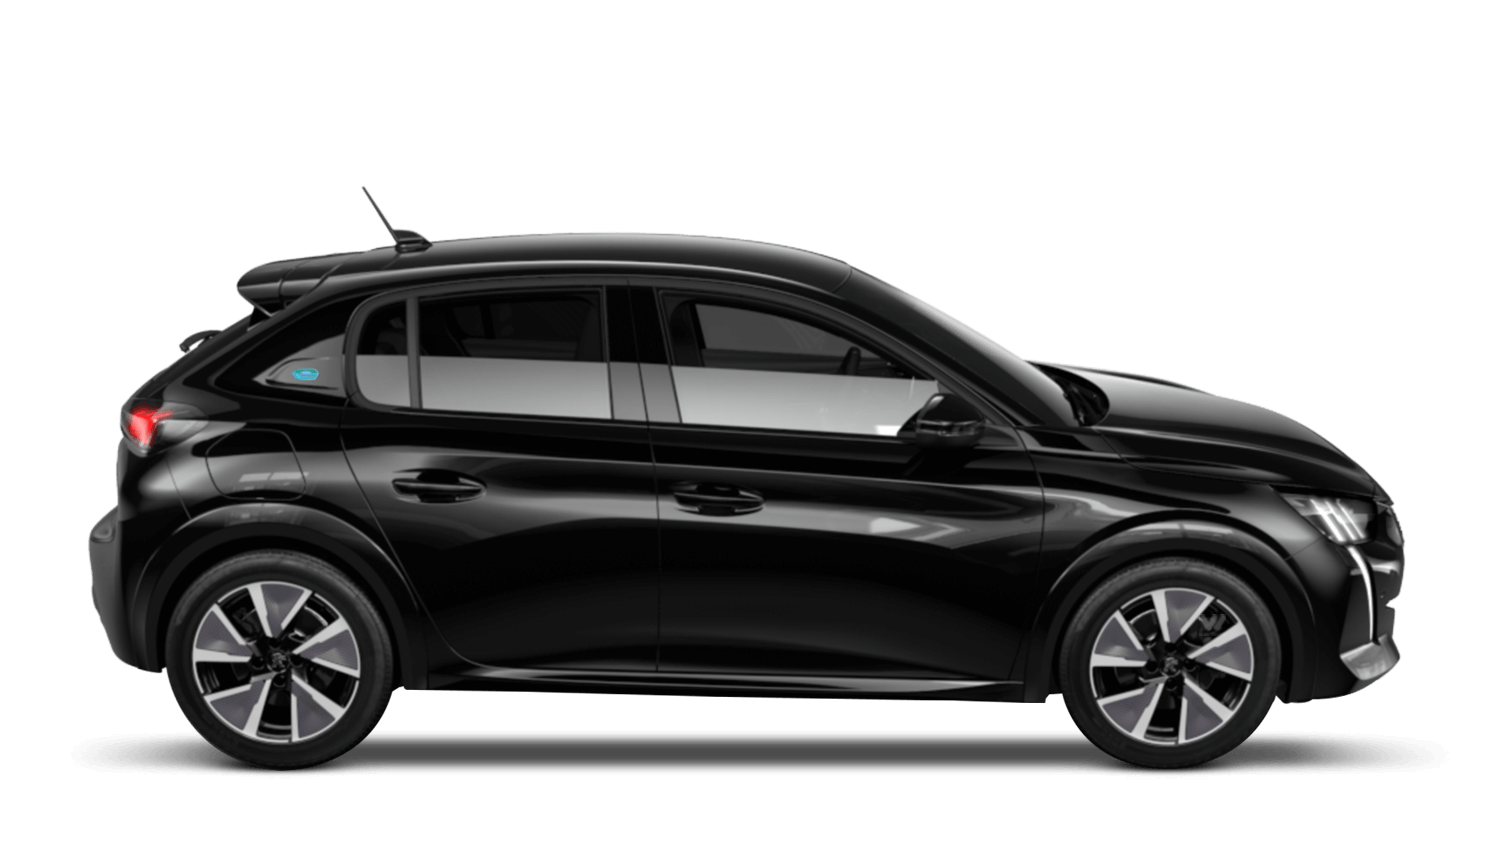 Nera Black All-new Peugeot e-208